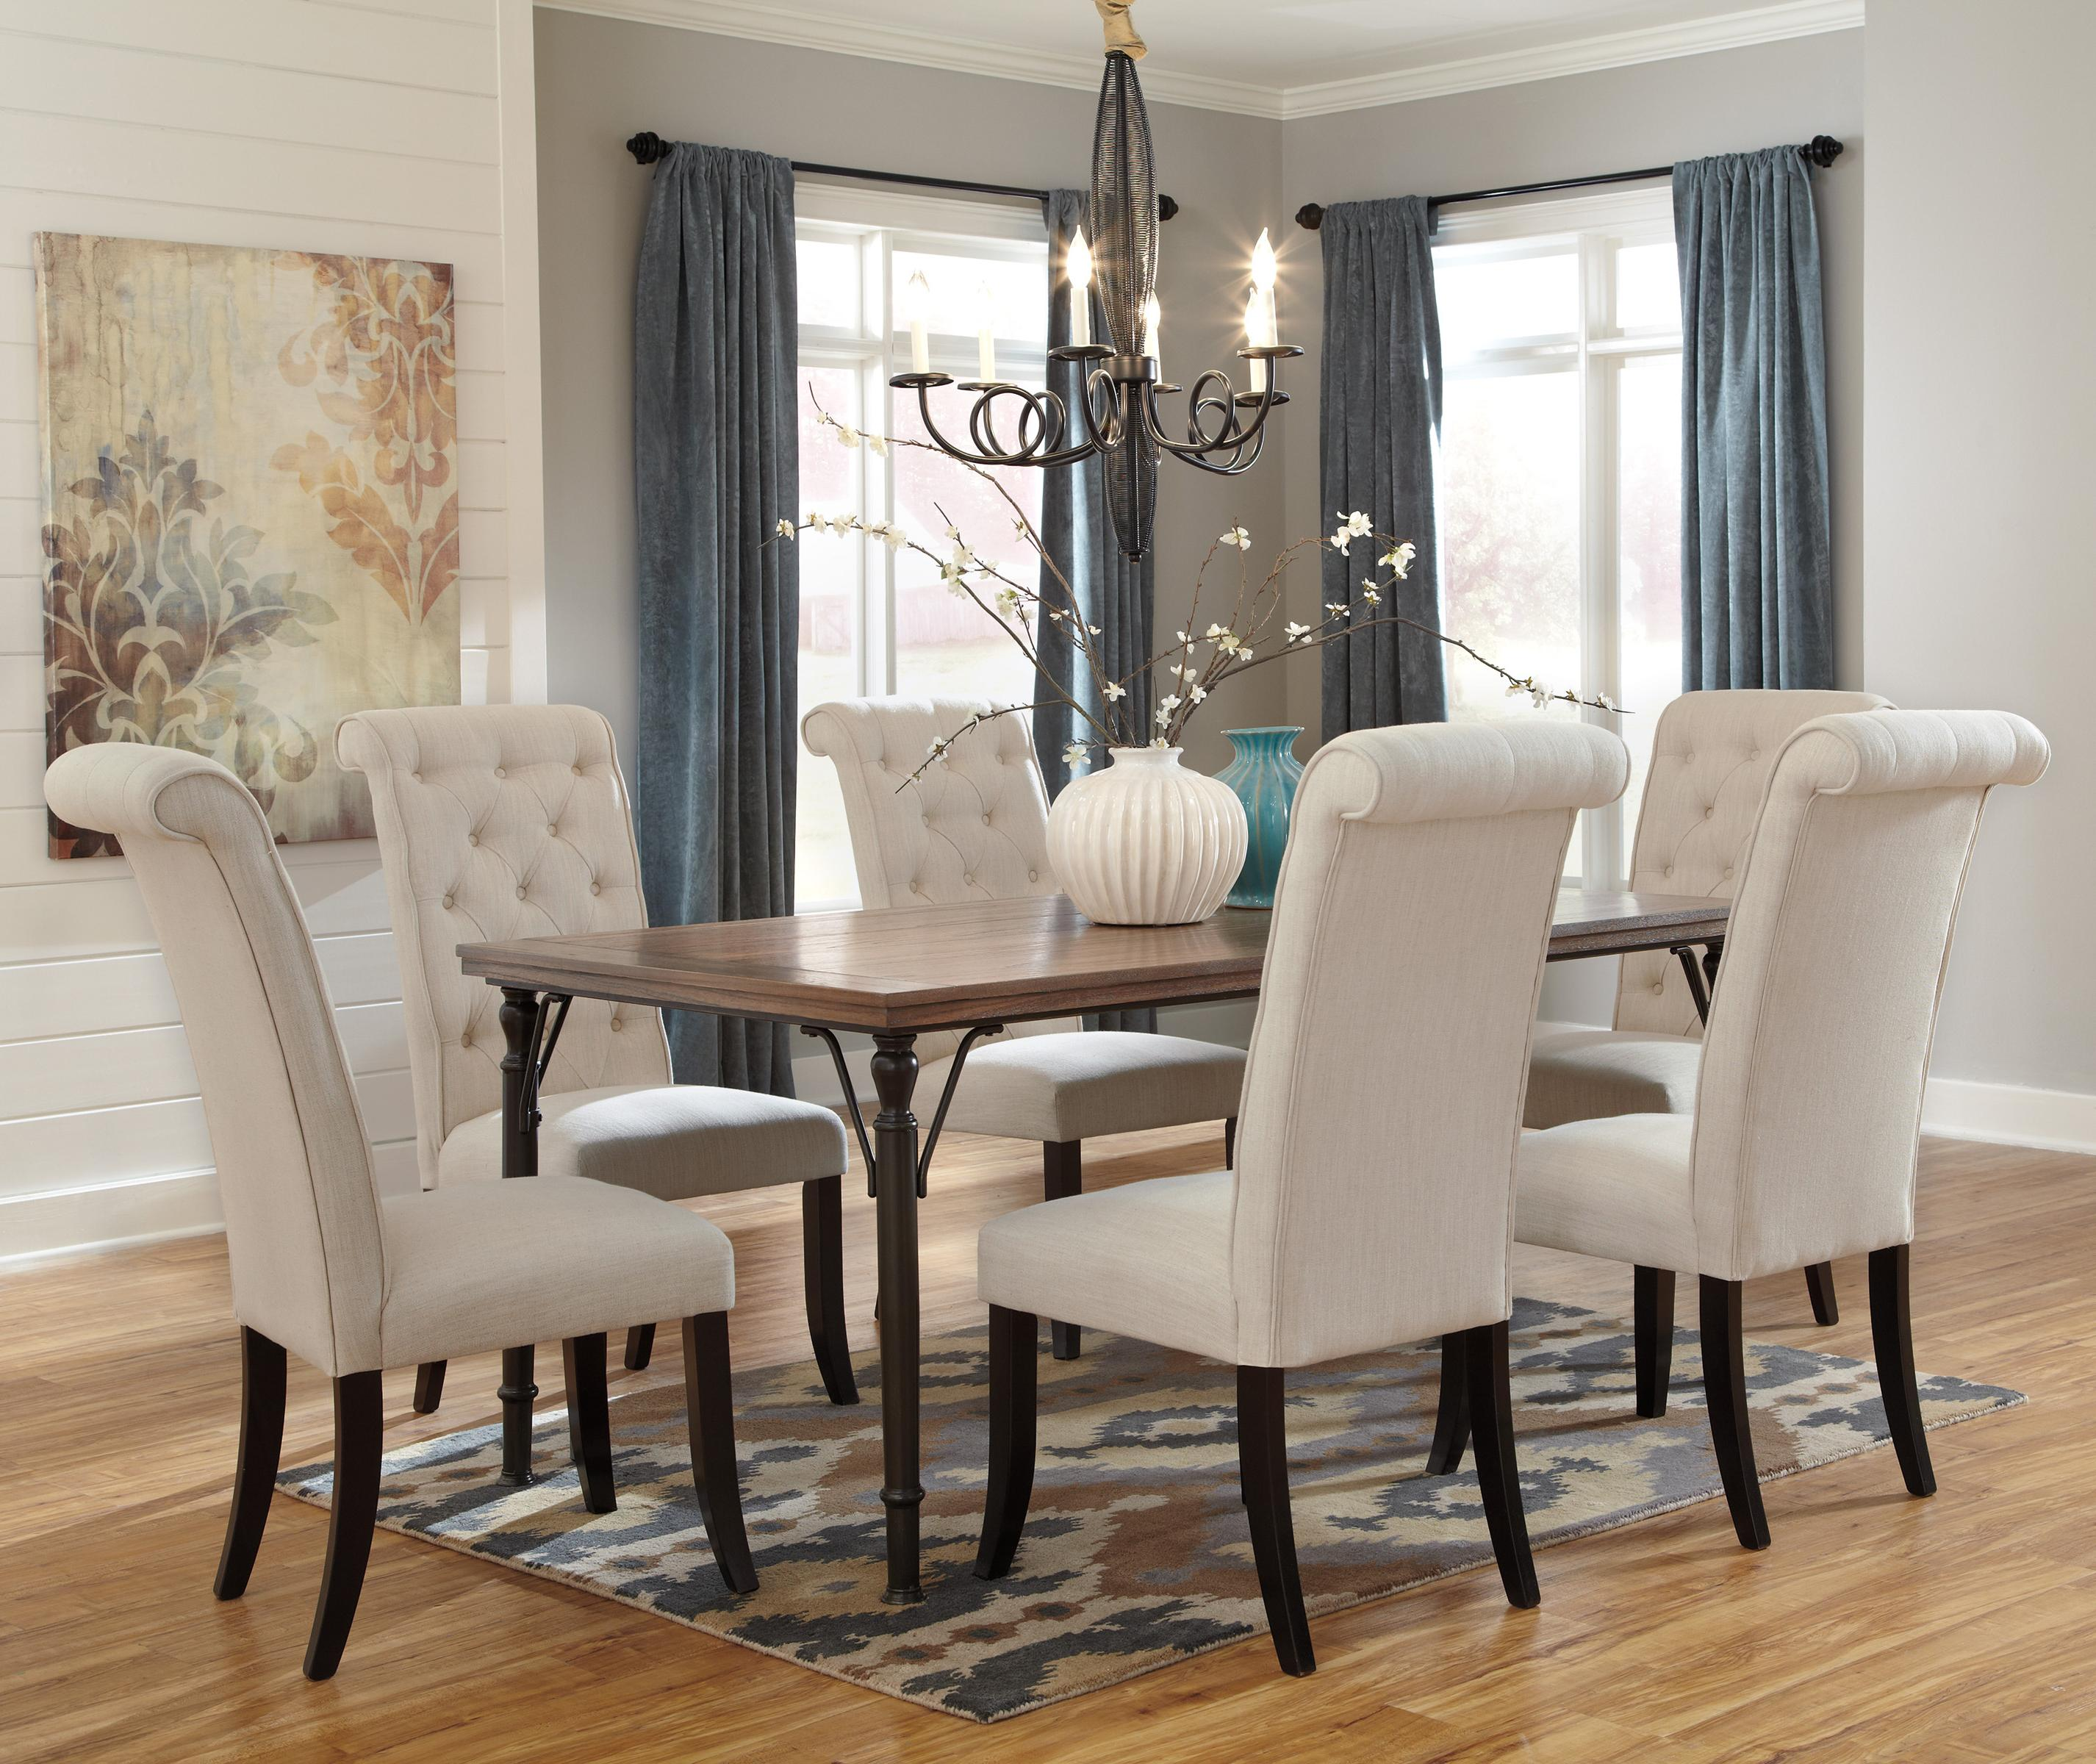 Dining Room Sets With 6 Chairs